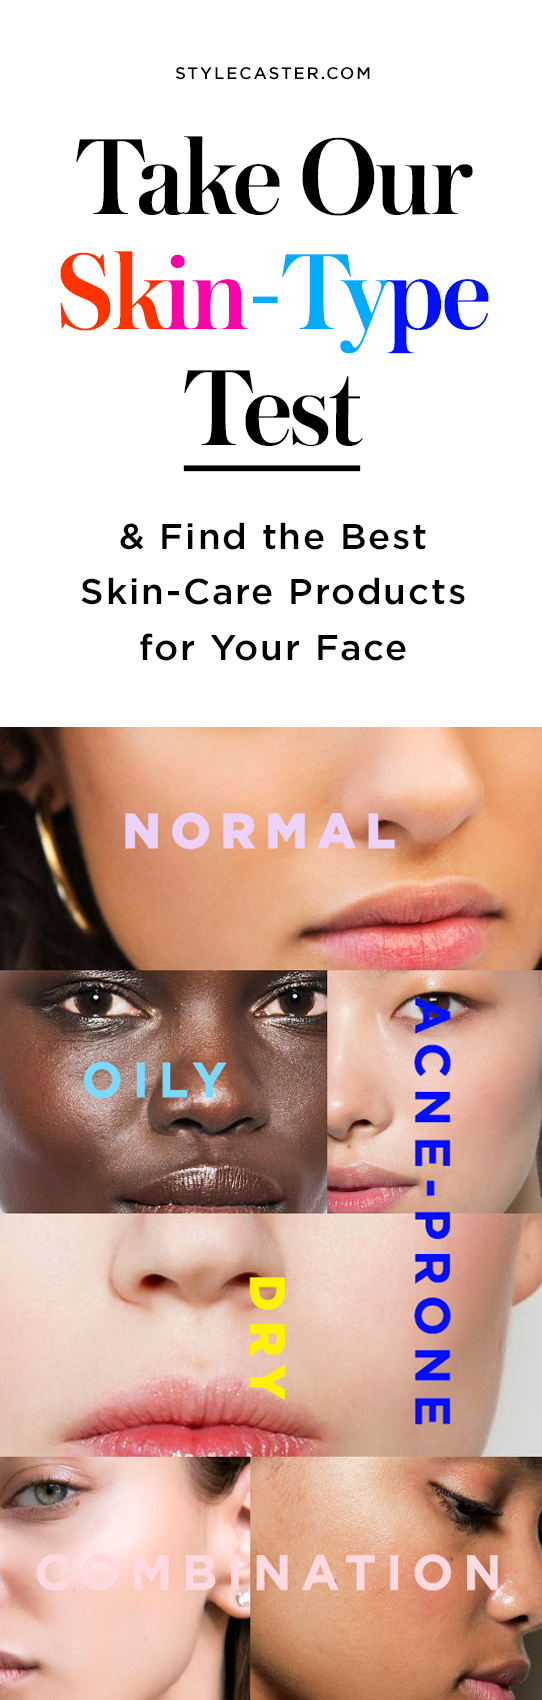 The Best Skin-Care Products for Your Skin Type  StyleCaster